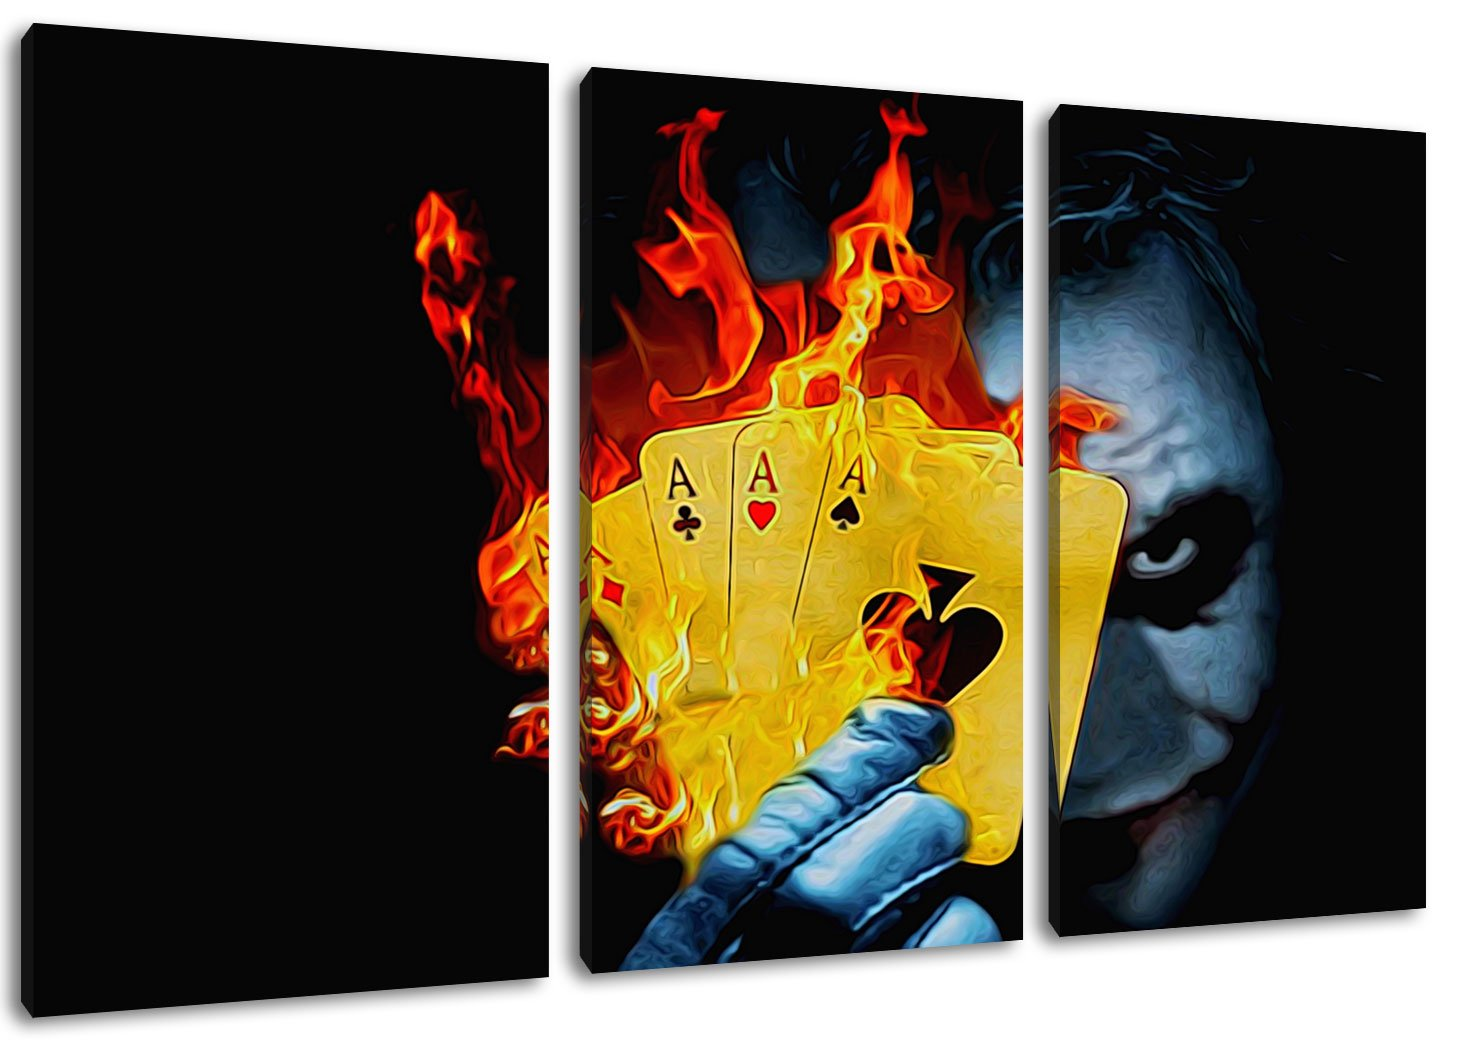 Amazing Wall Art Canvas 3 Pieces Contemporary - The Wall Art ...